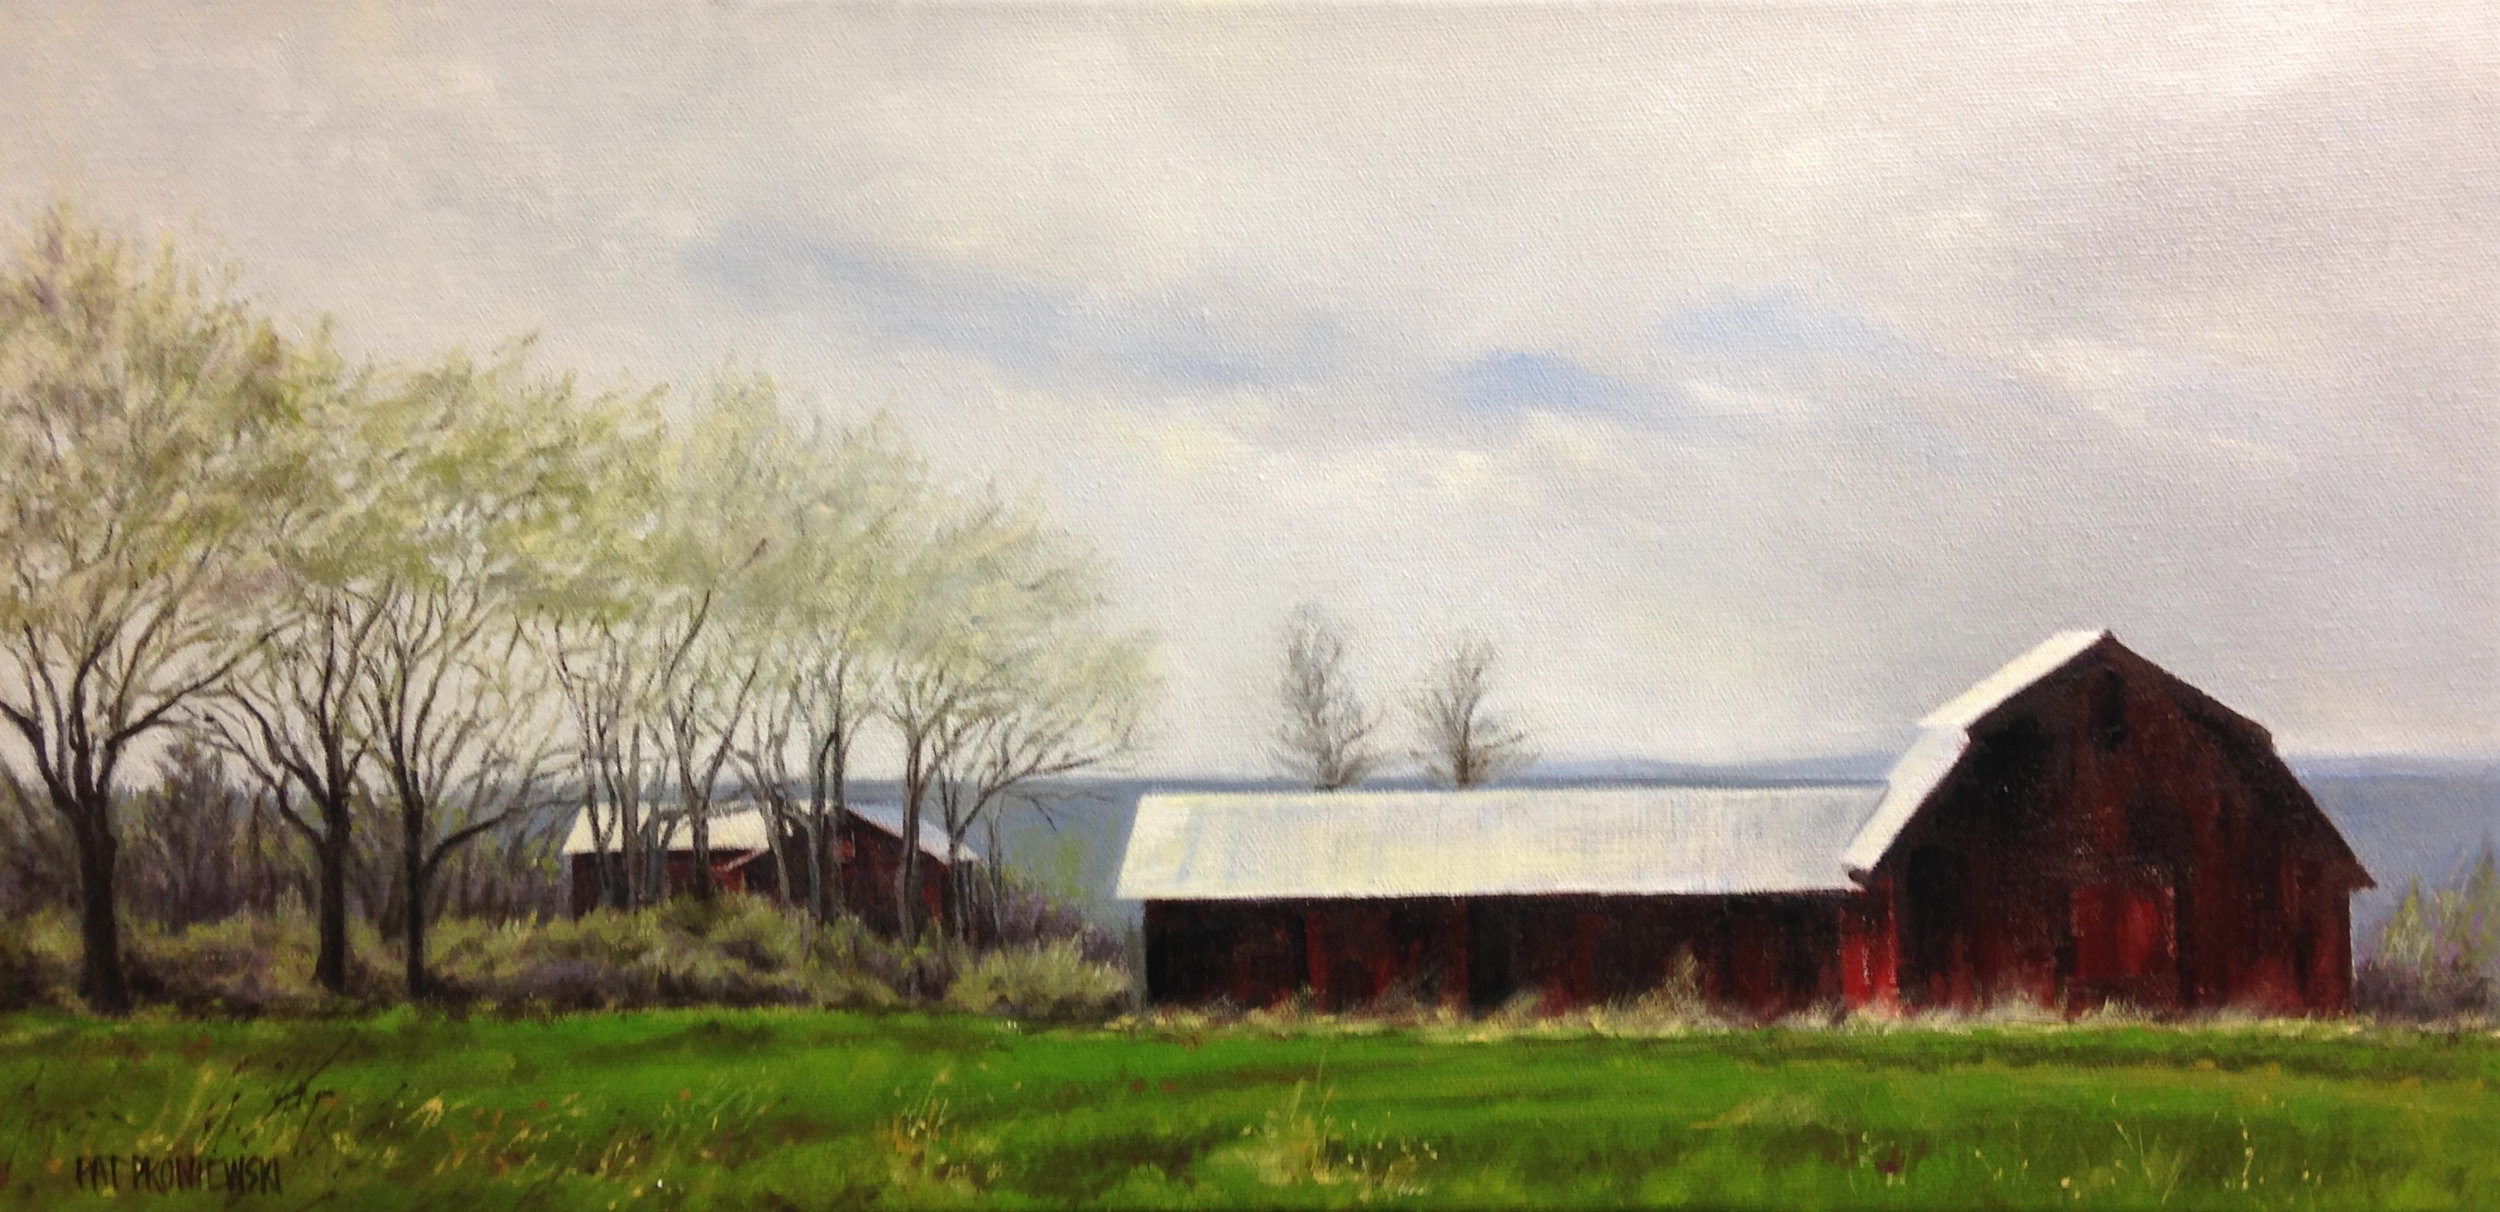 The Red Barn, Finger Lakes